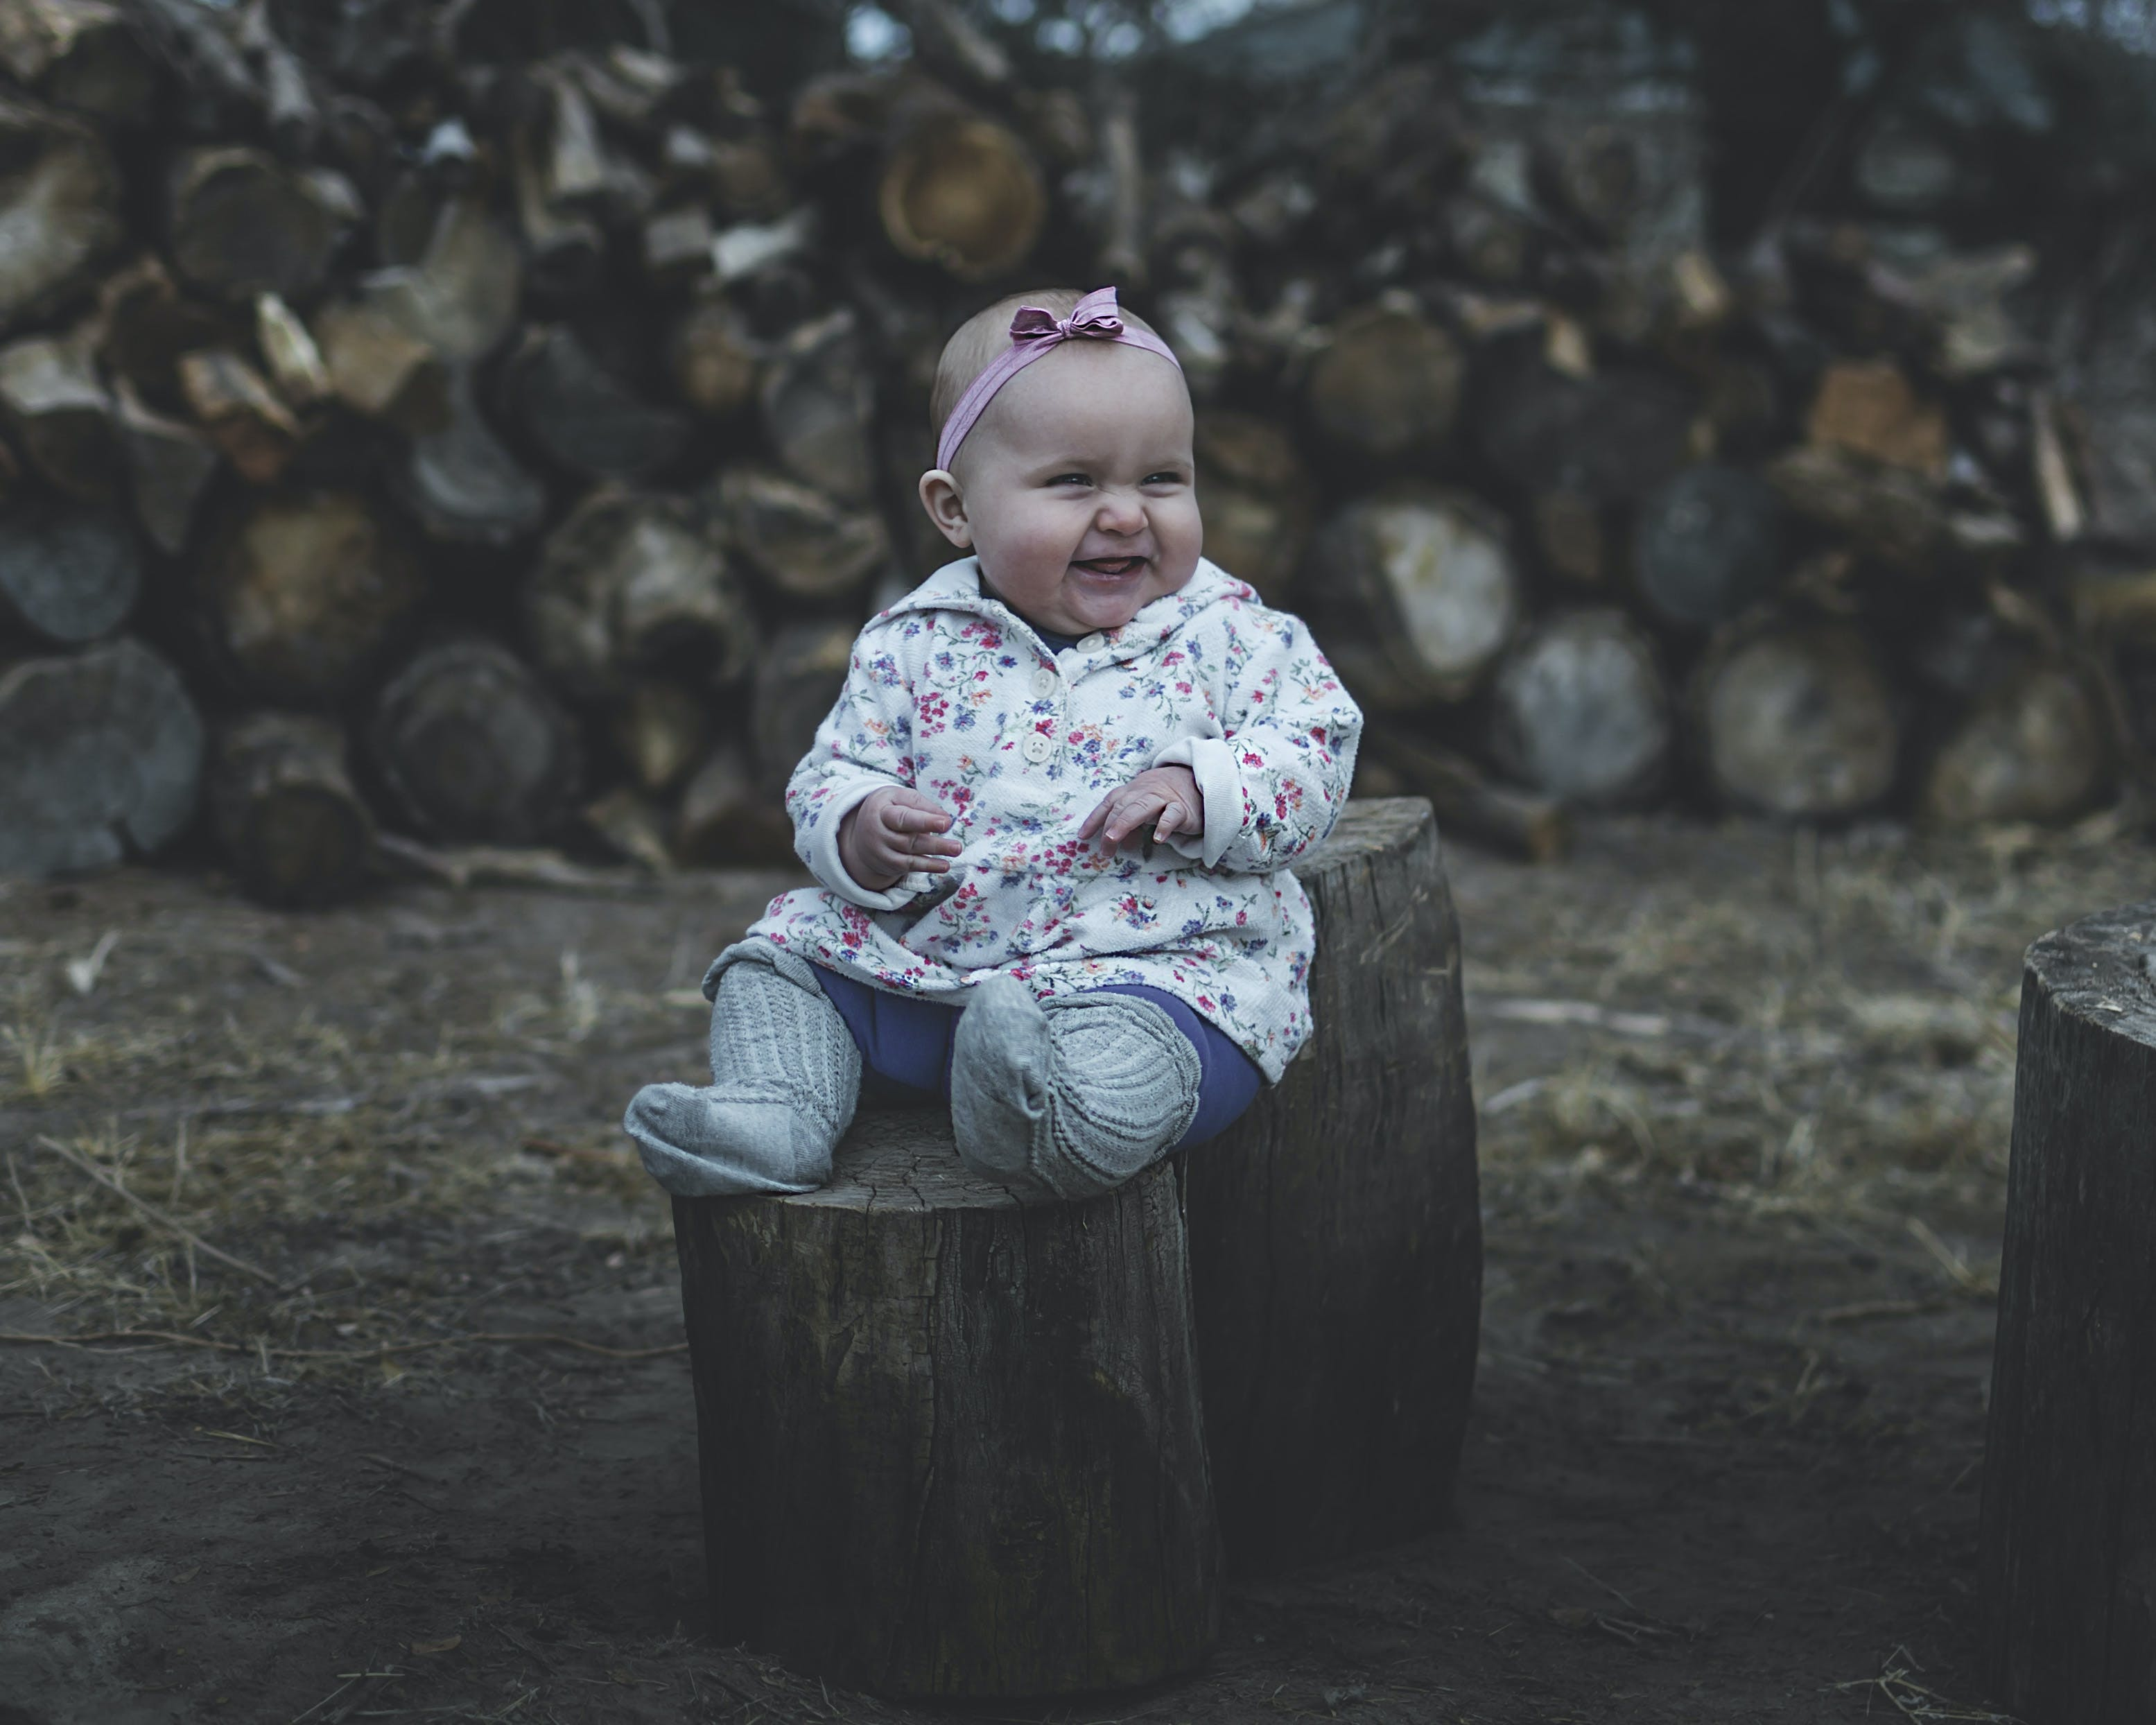 Toddler Smiling While Sitting on Wood Log